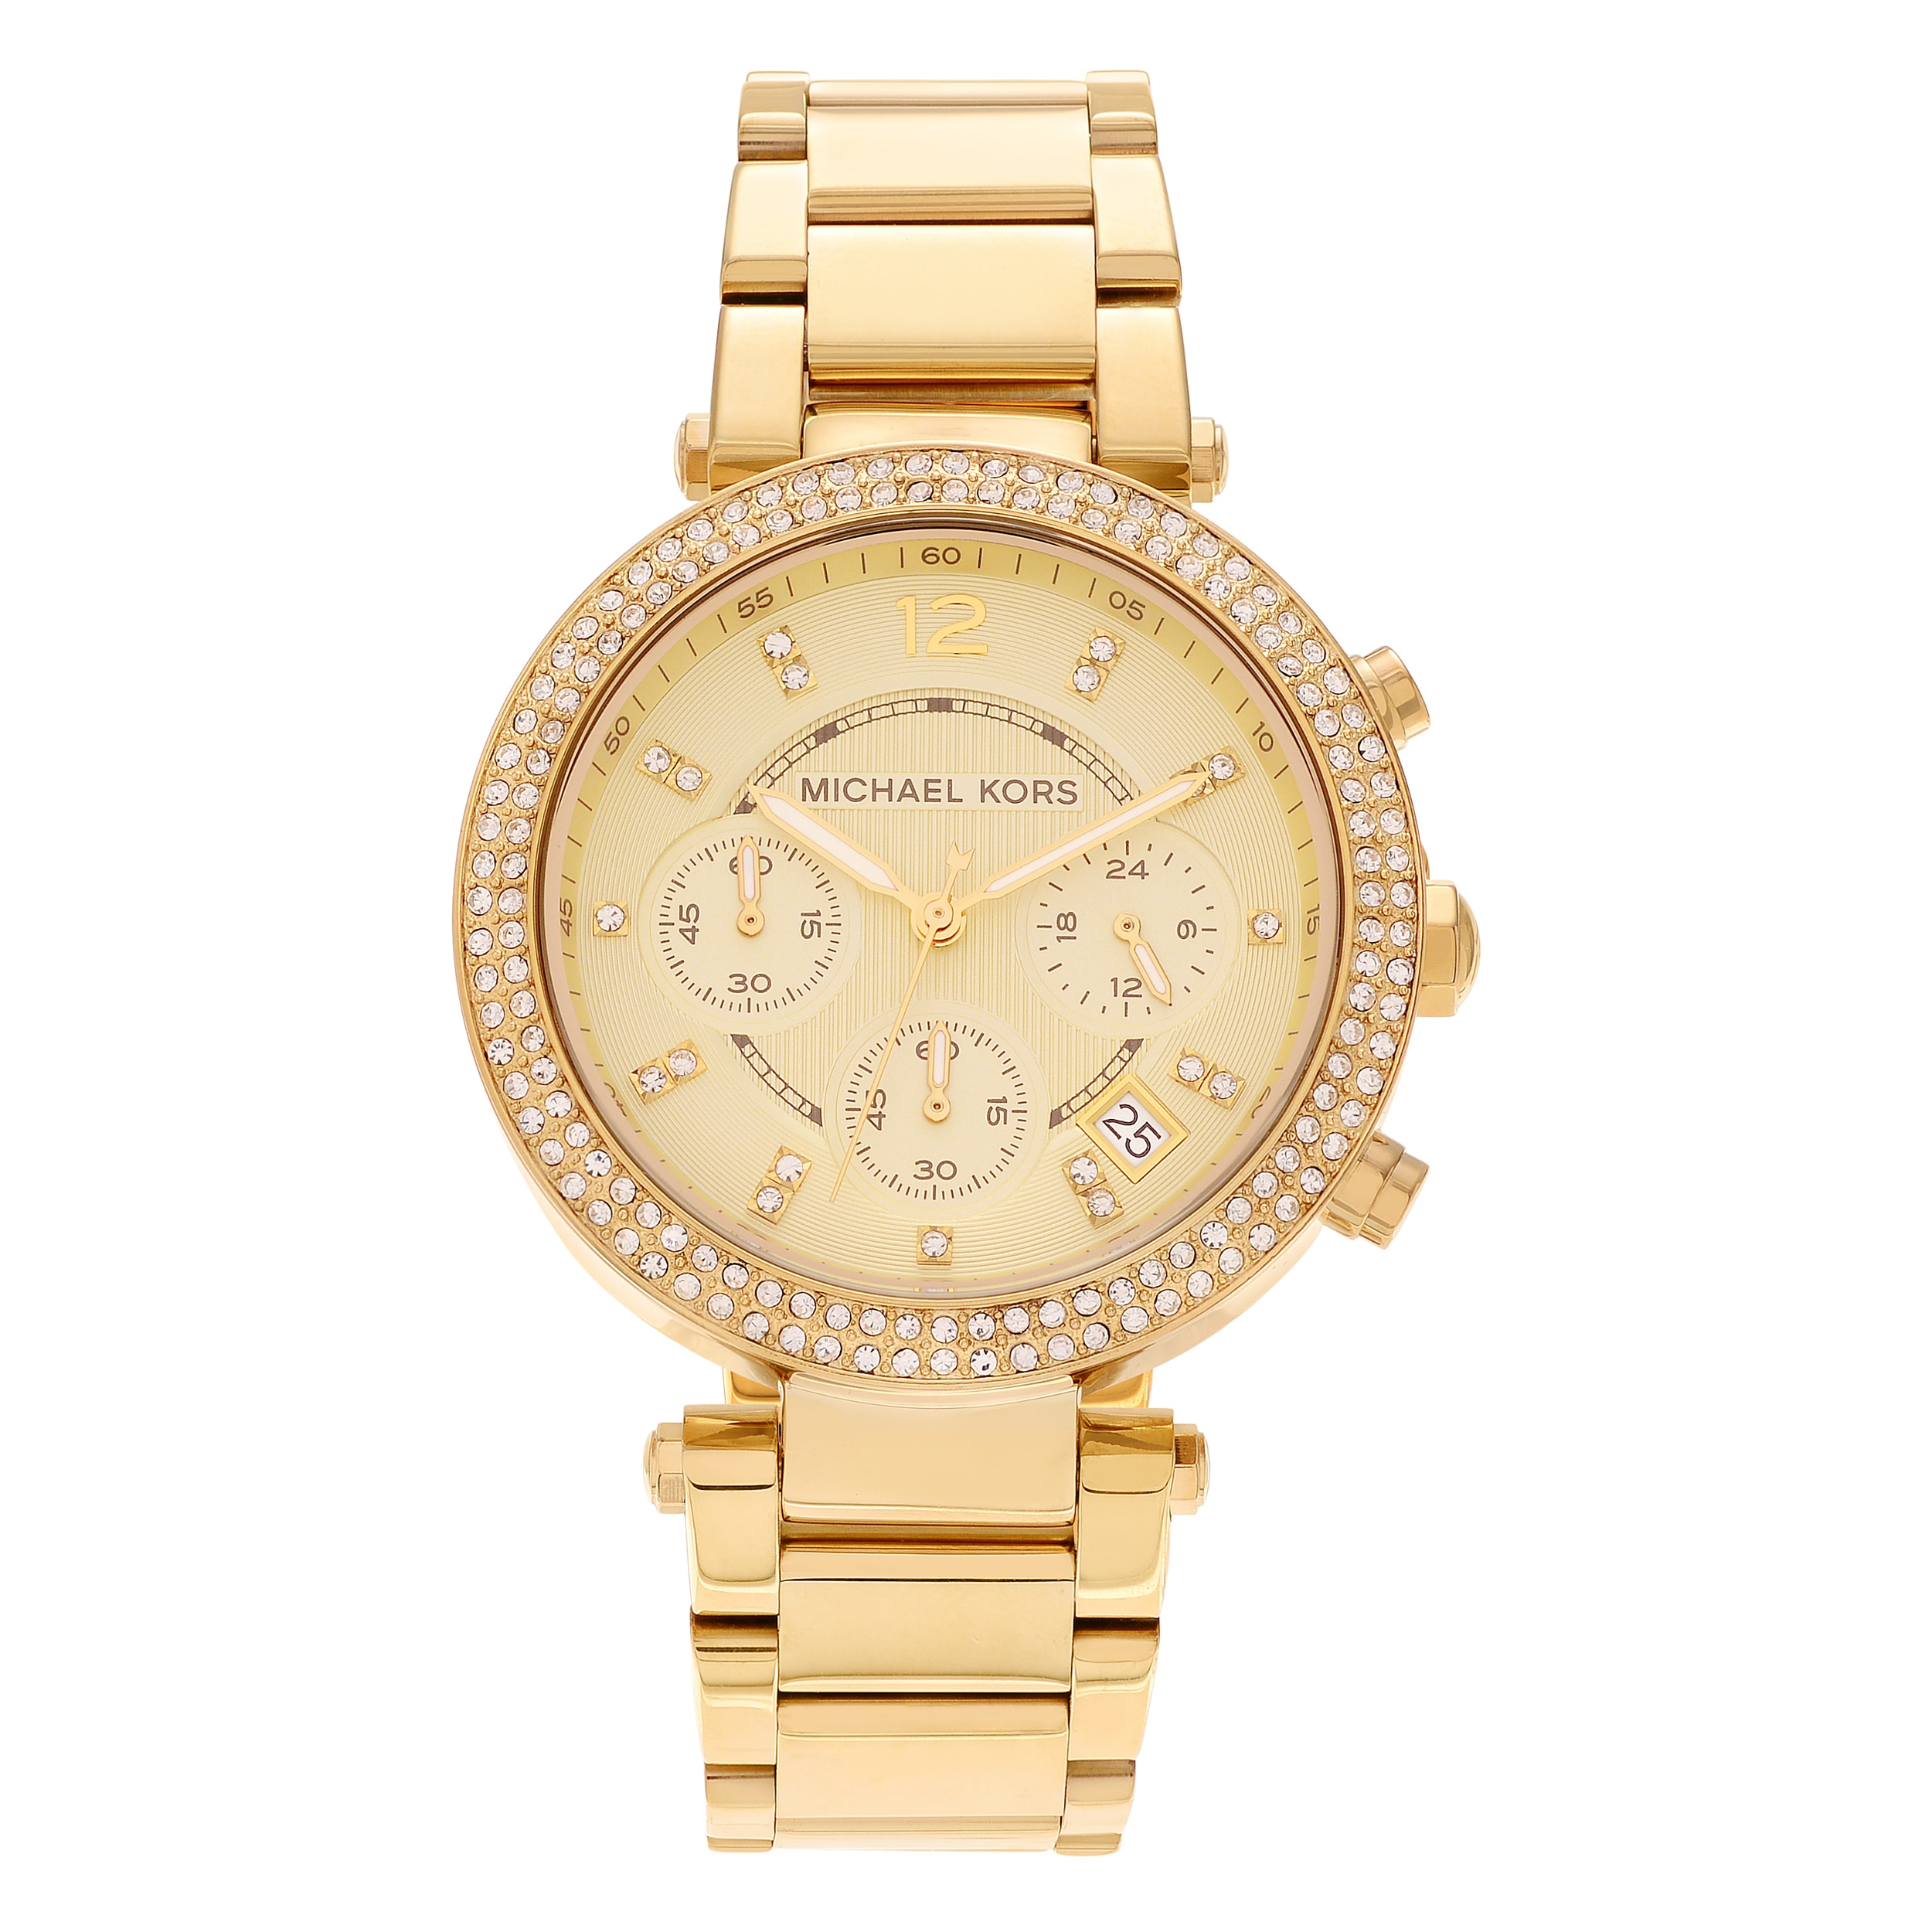 Price Pfister  Women's MK5354 'Parker' Yellow Gold Stainless Steel Watch